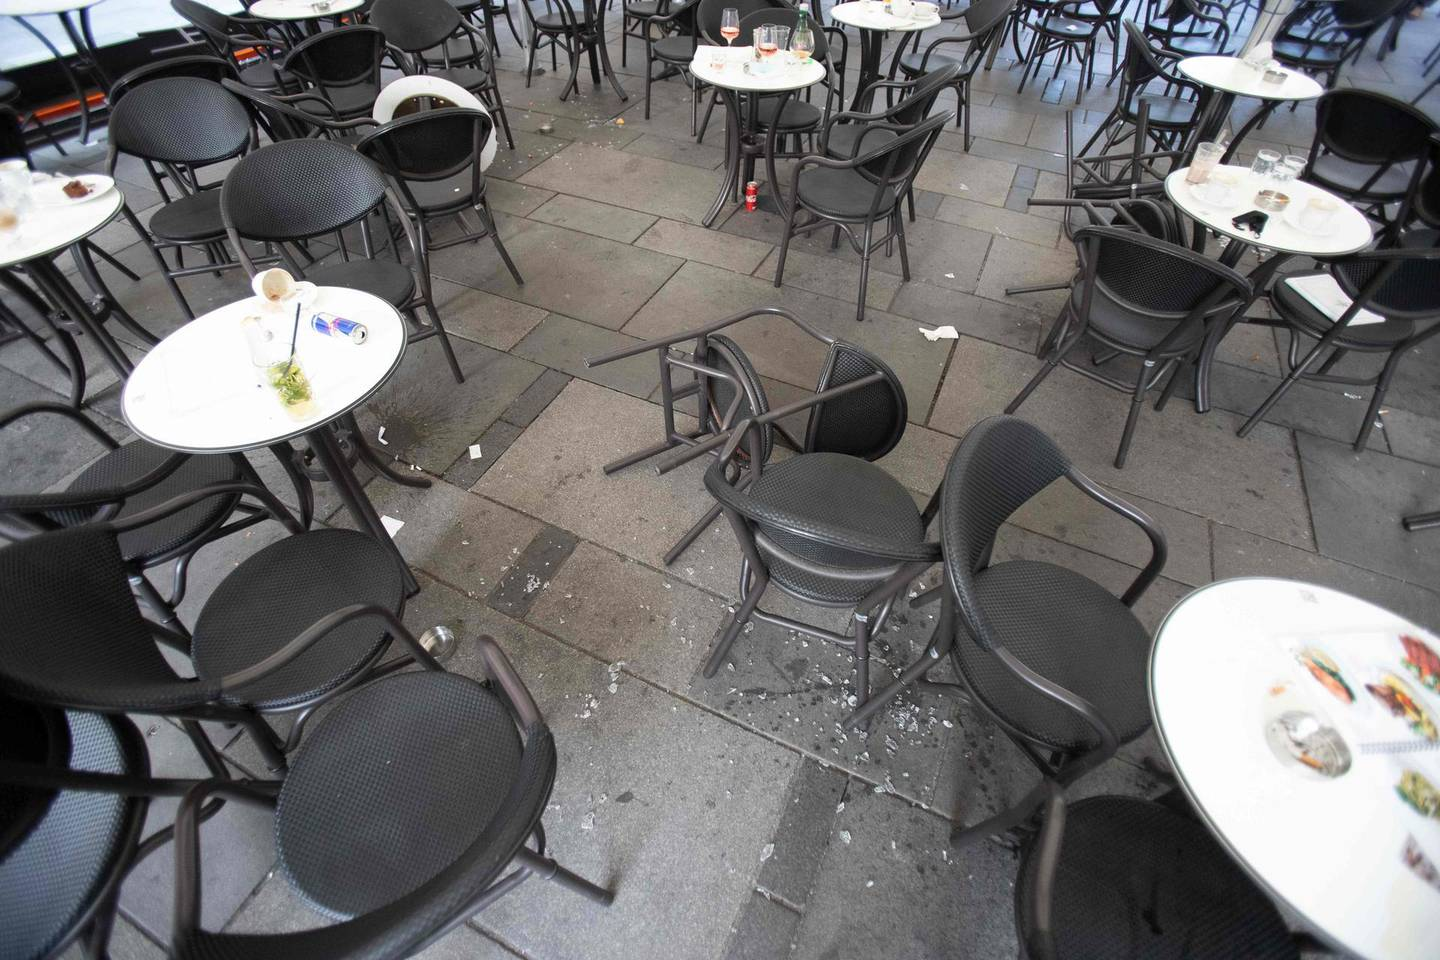 """Broken glass is seen on the ground next to chairs and tables of a cafe near Stephansplatz in Vienna on November 3, 2020, after a shooting at multiple locations across central Vienna. Four people were killed in multiple shootings in Vienna on Monday evening, November 2, 2020, in what Austrian Chancellor Sebastian Kurz described as a """"repulsive terror attack"""". / AFP / ALEX HALADA"""